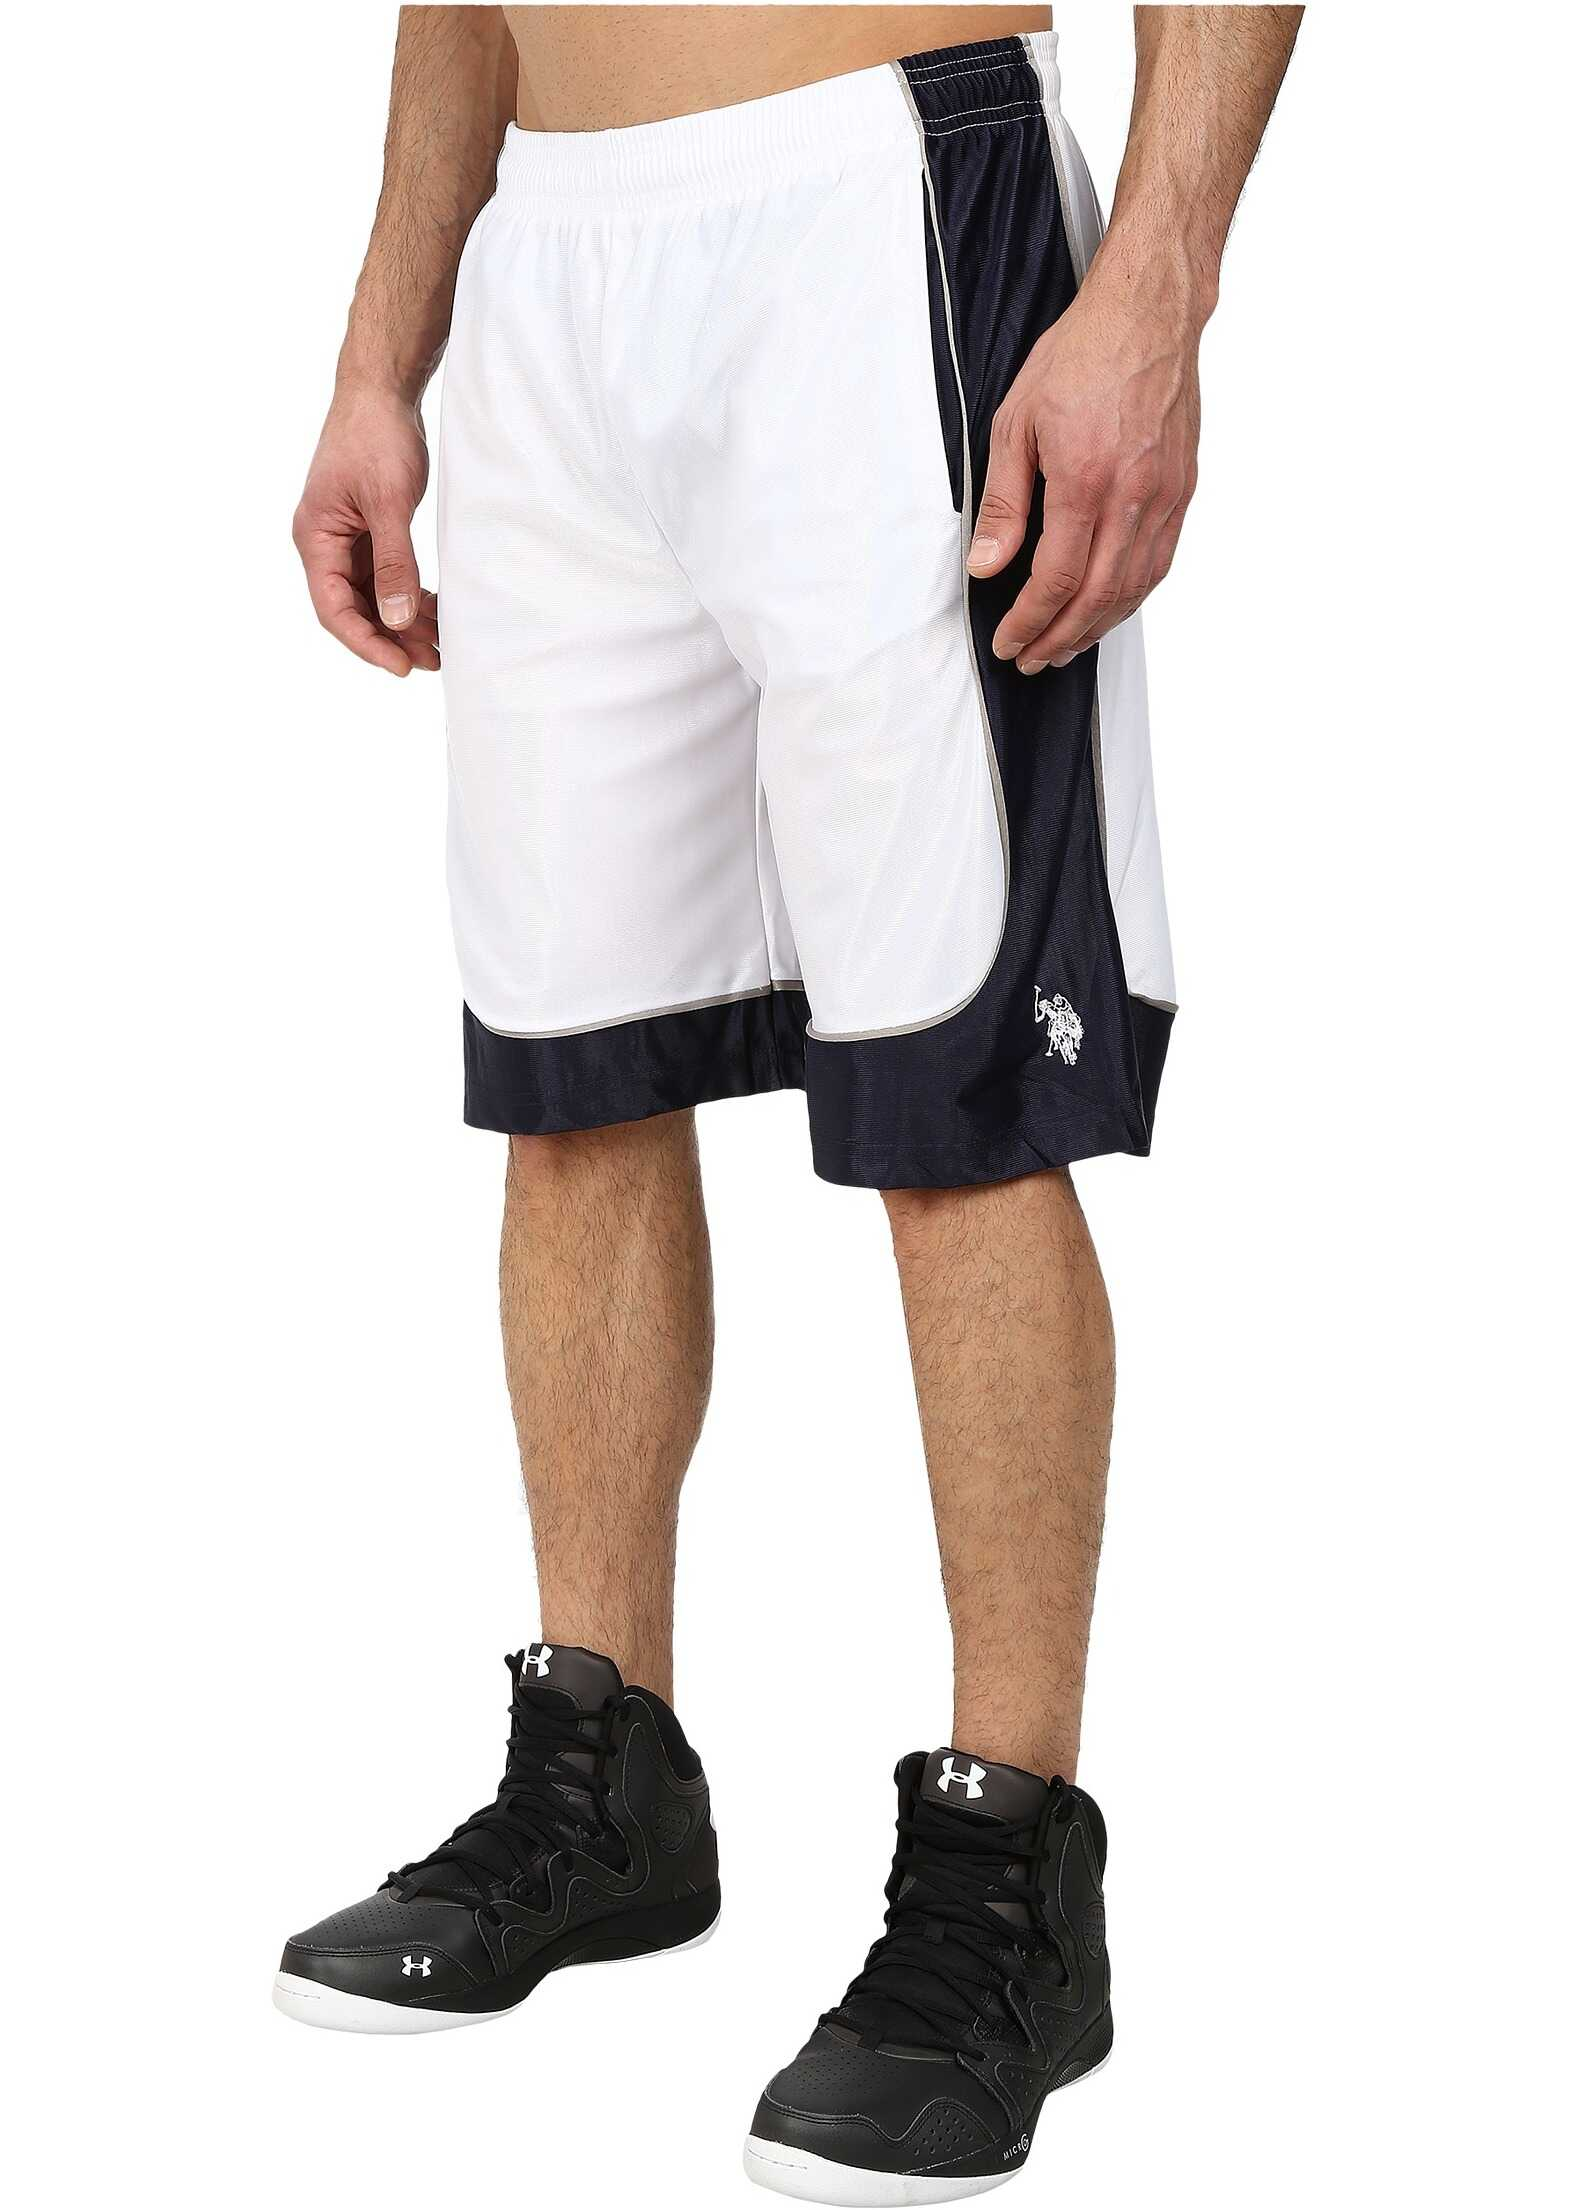 U.S. POLO ASSN. Athletic Shorts with Dazzle Side Panel White